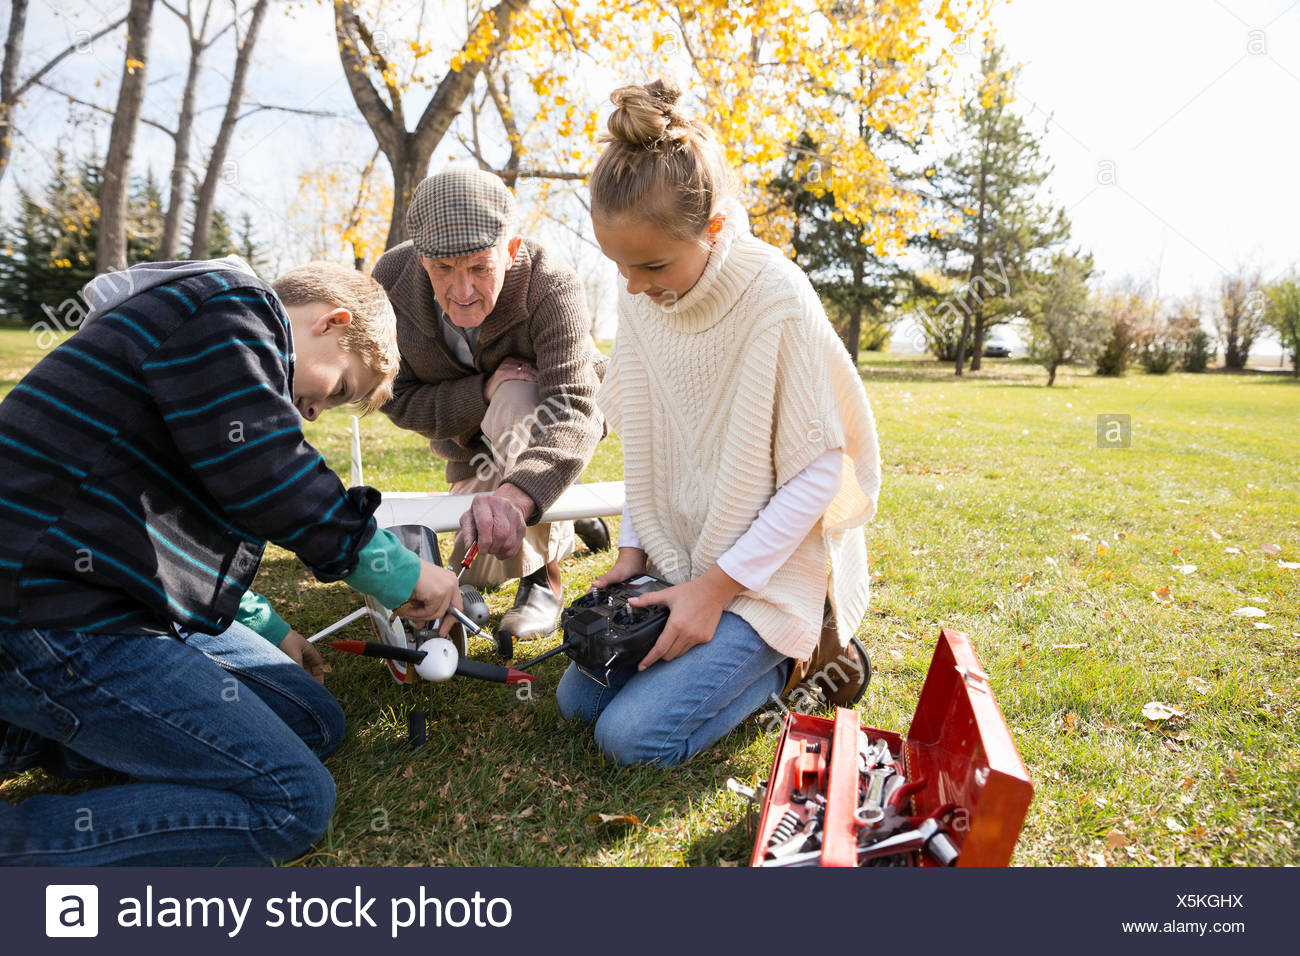 Grandfather and grandchildren fixing model airplane in autumn park - Stock Image